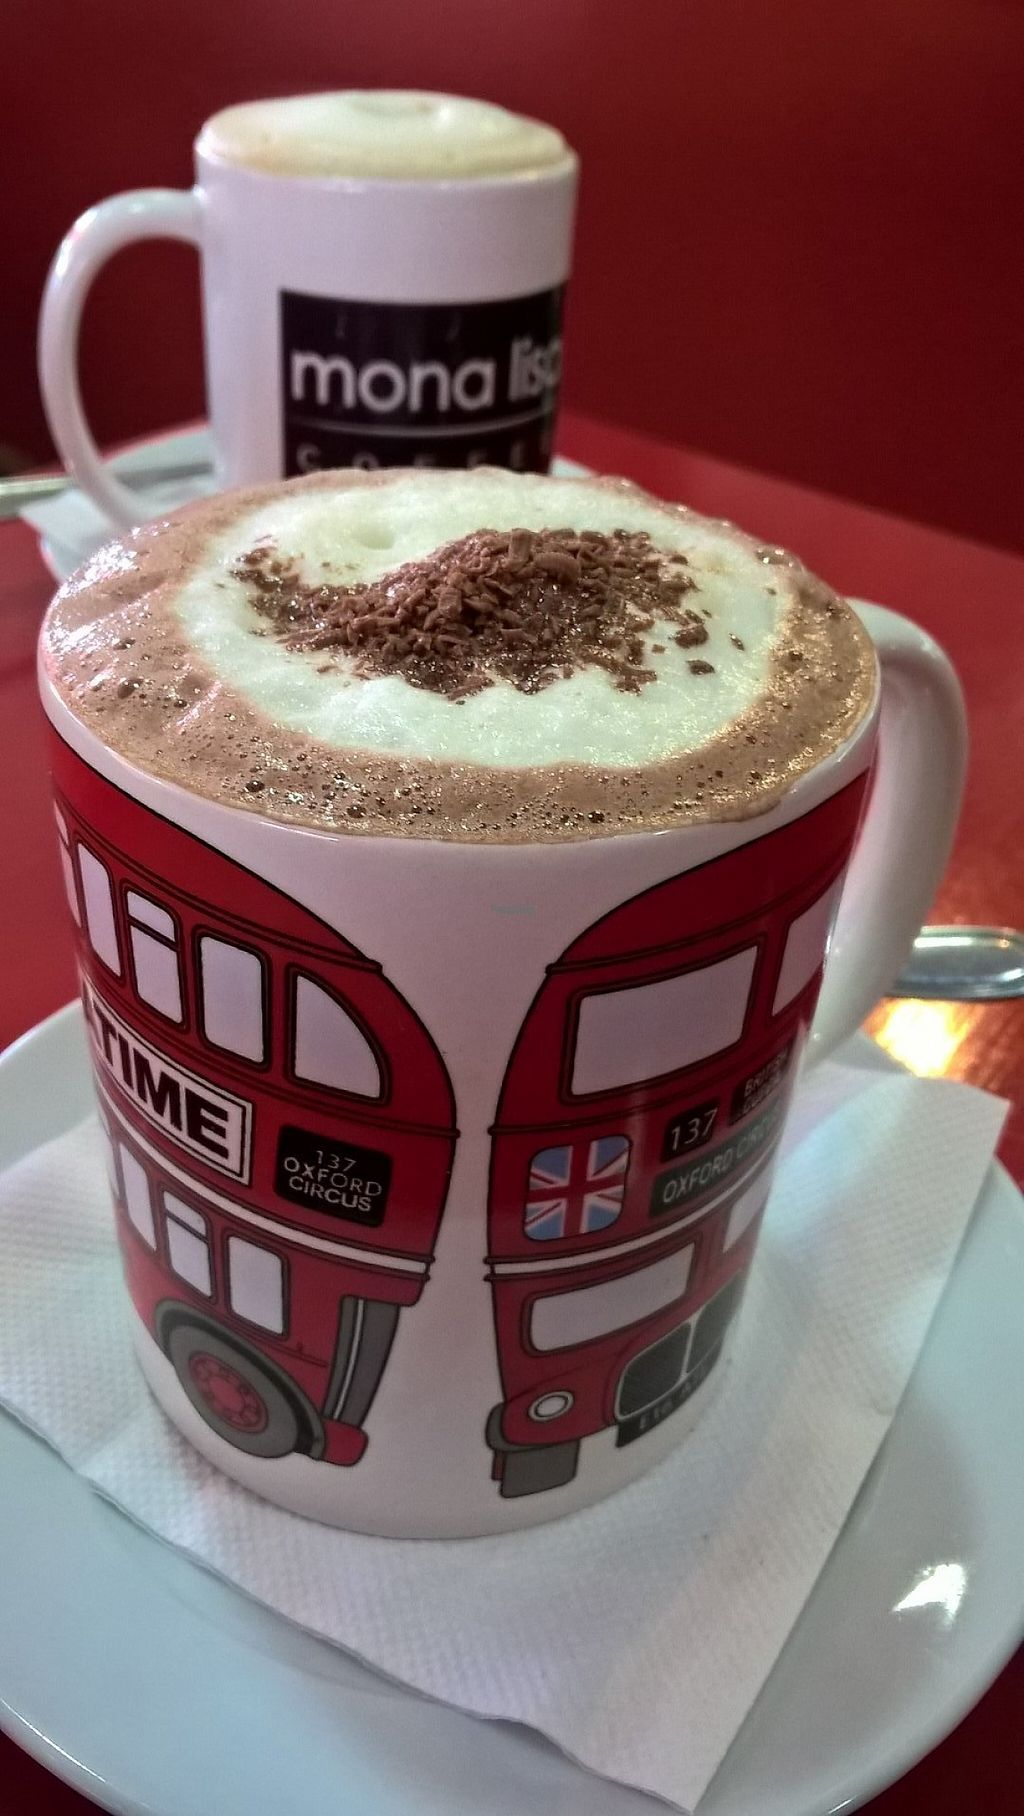 "Photo of Mona Lisa Coffee  by <a href=""/members/profile/arya00"">arya00</a> <br/>Soy hot choc <br/> April 5, 2017  - <a href='/contact/abuse/image/89890/245050'>Report</a>"